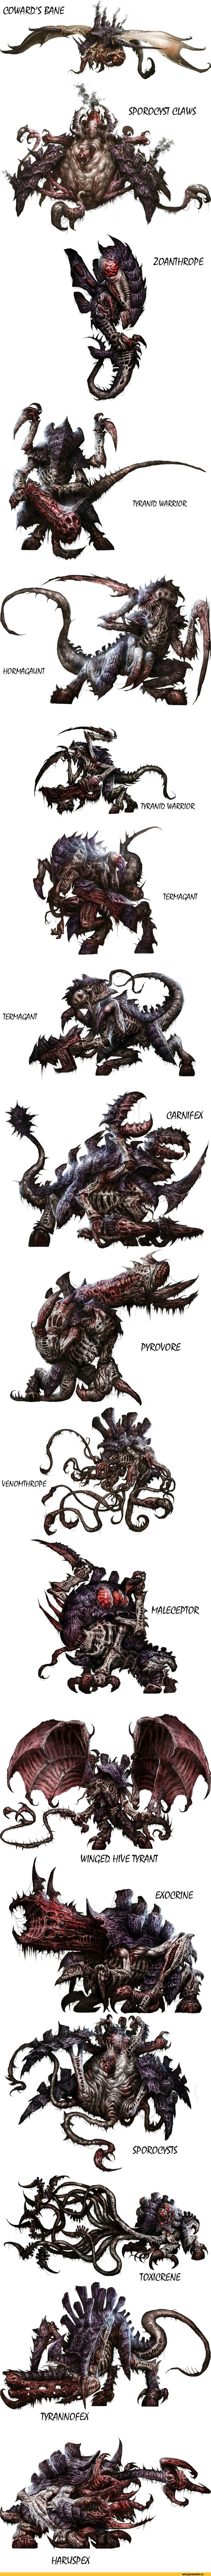 Tyranid art from Shield of Baal: Leviathan.